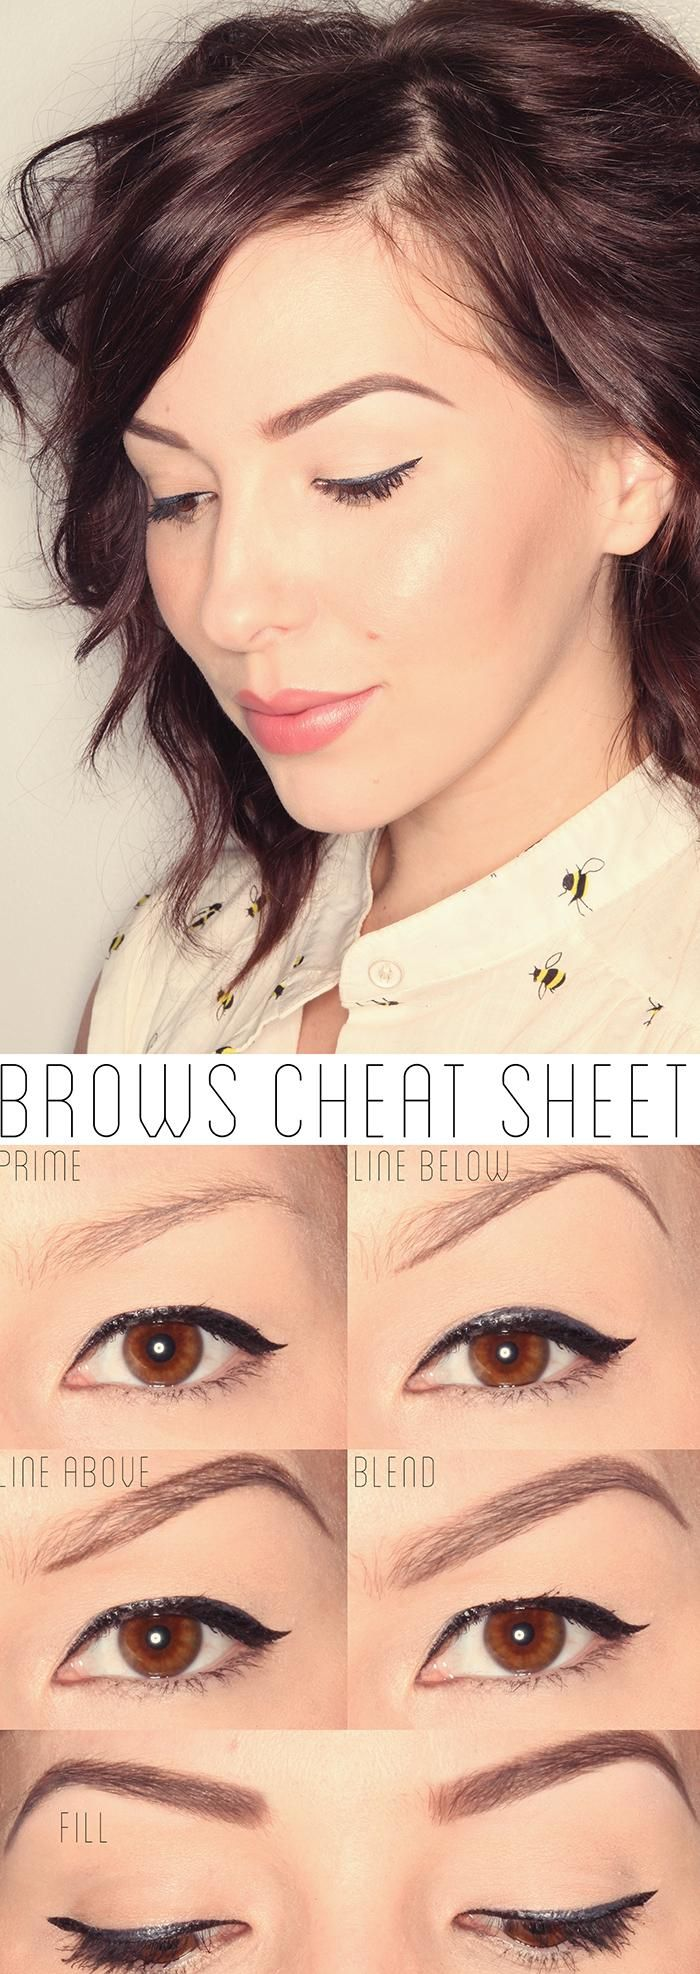 Perfect brows are a #cinch with this cheat sheet!